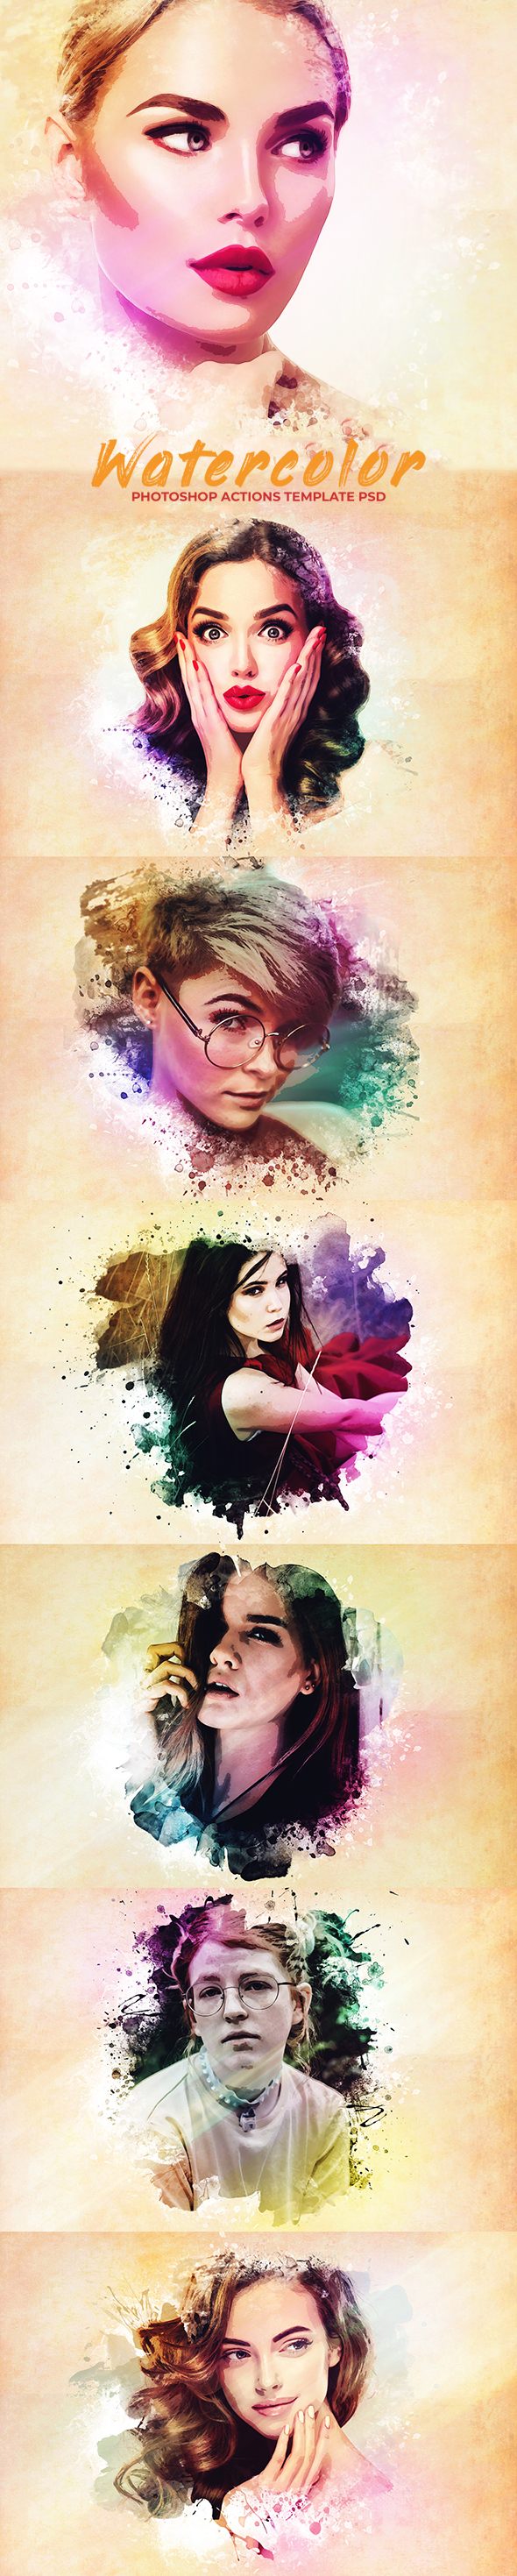 Watercolor Photoshop PSD Template - Photo Effects Actions